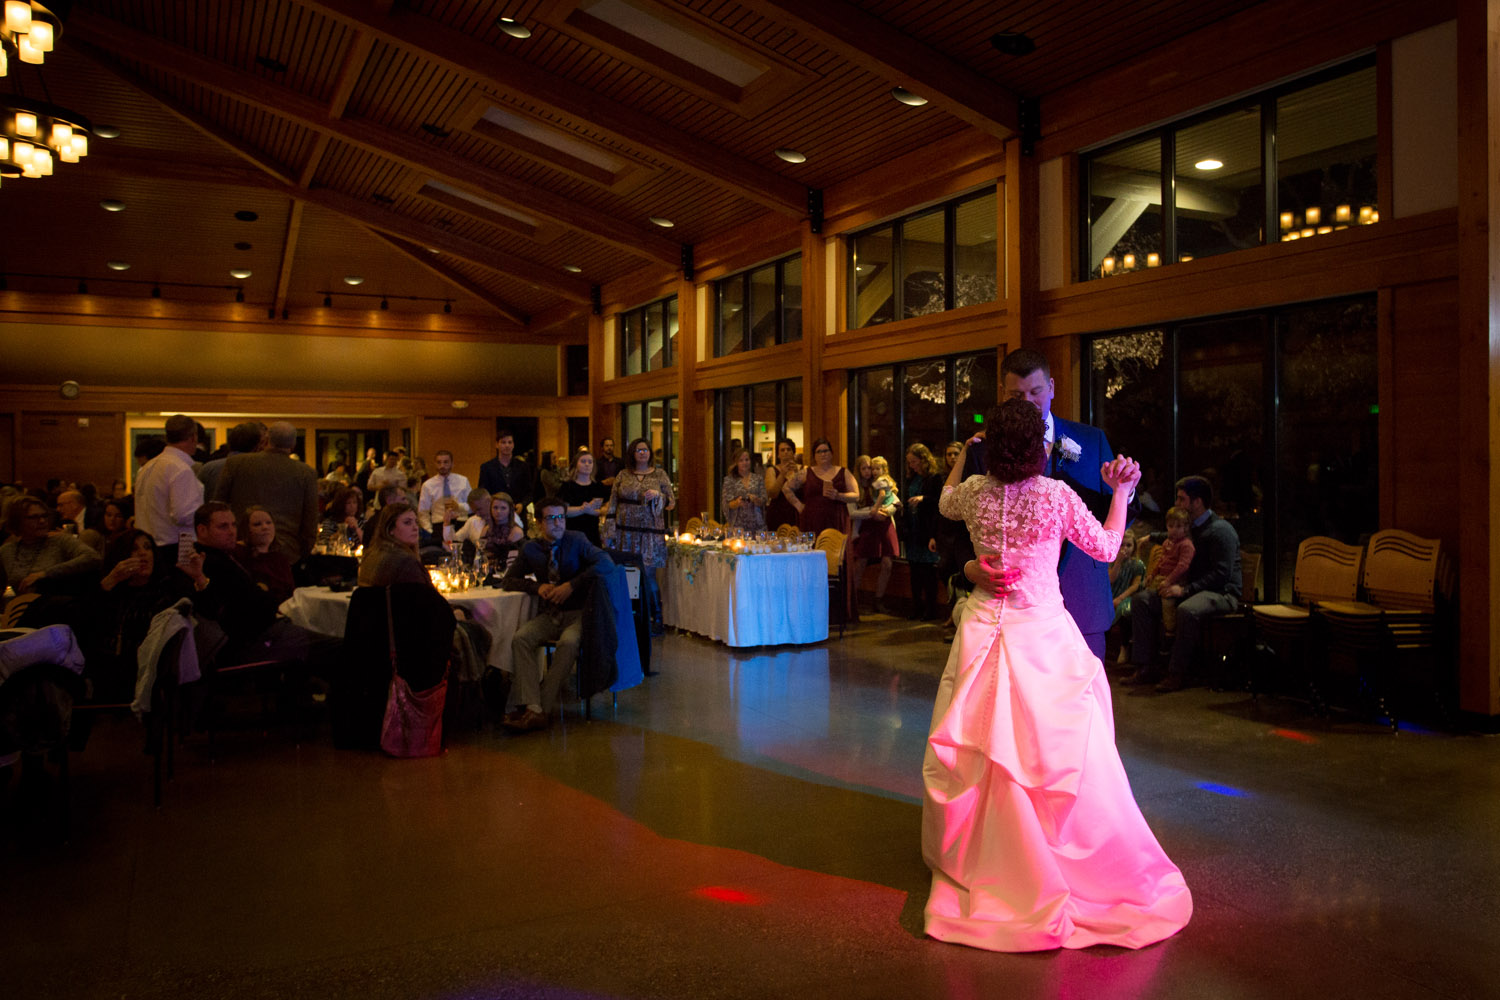 20-silverwood-park-great-hall-wedding-reception-minnesota-bride-andgroom-first-dance-mahonen-photography.jpg